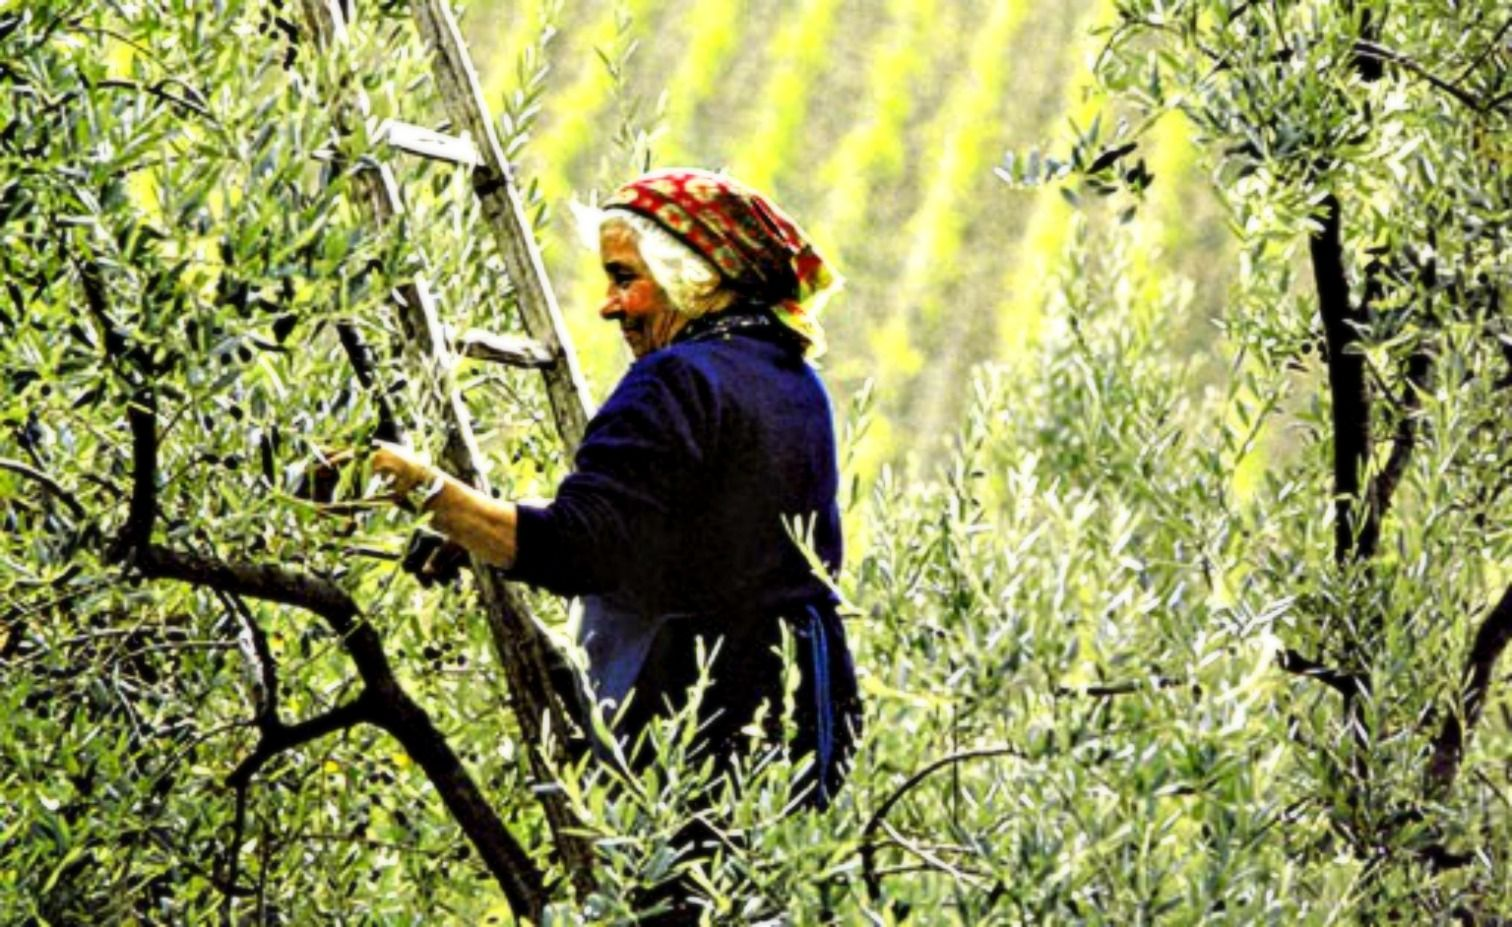 (pinned by pinner ... enlarged by me) ...Harvest somewhere in Italy